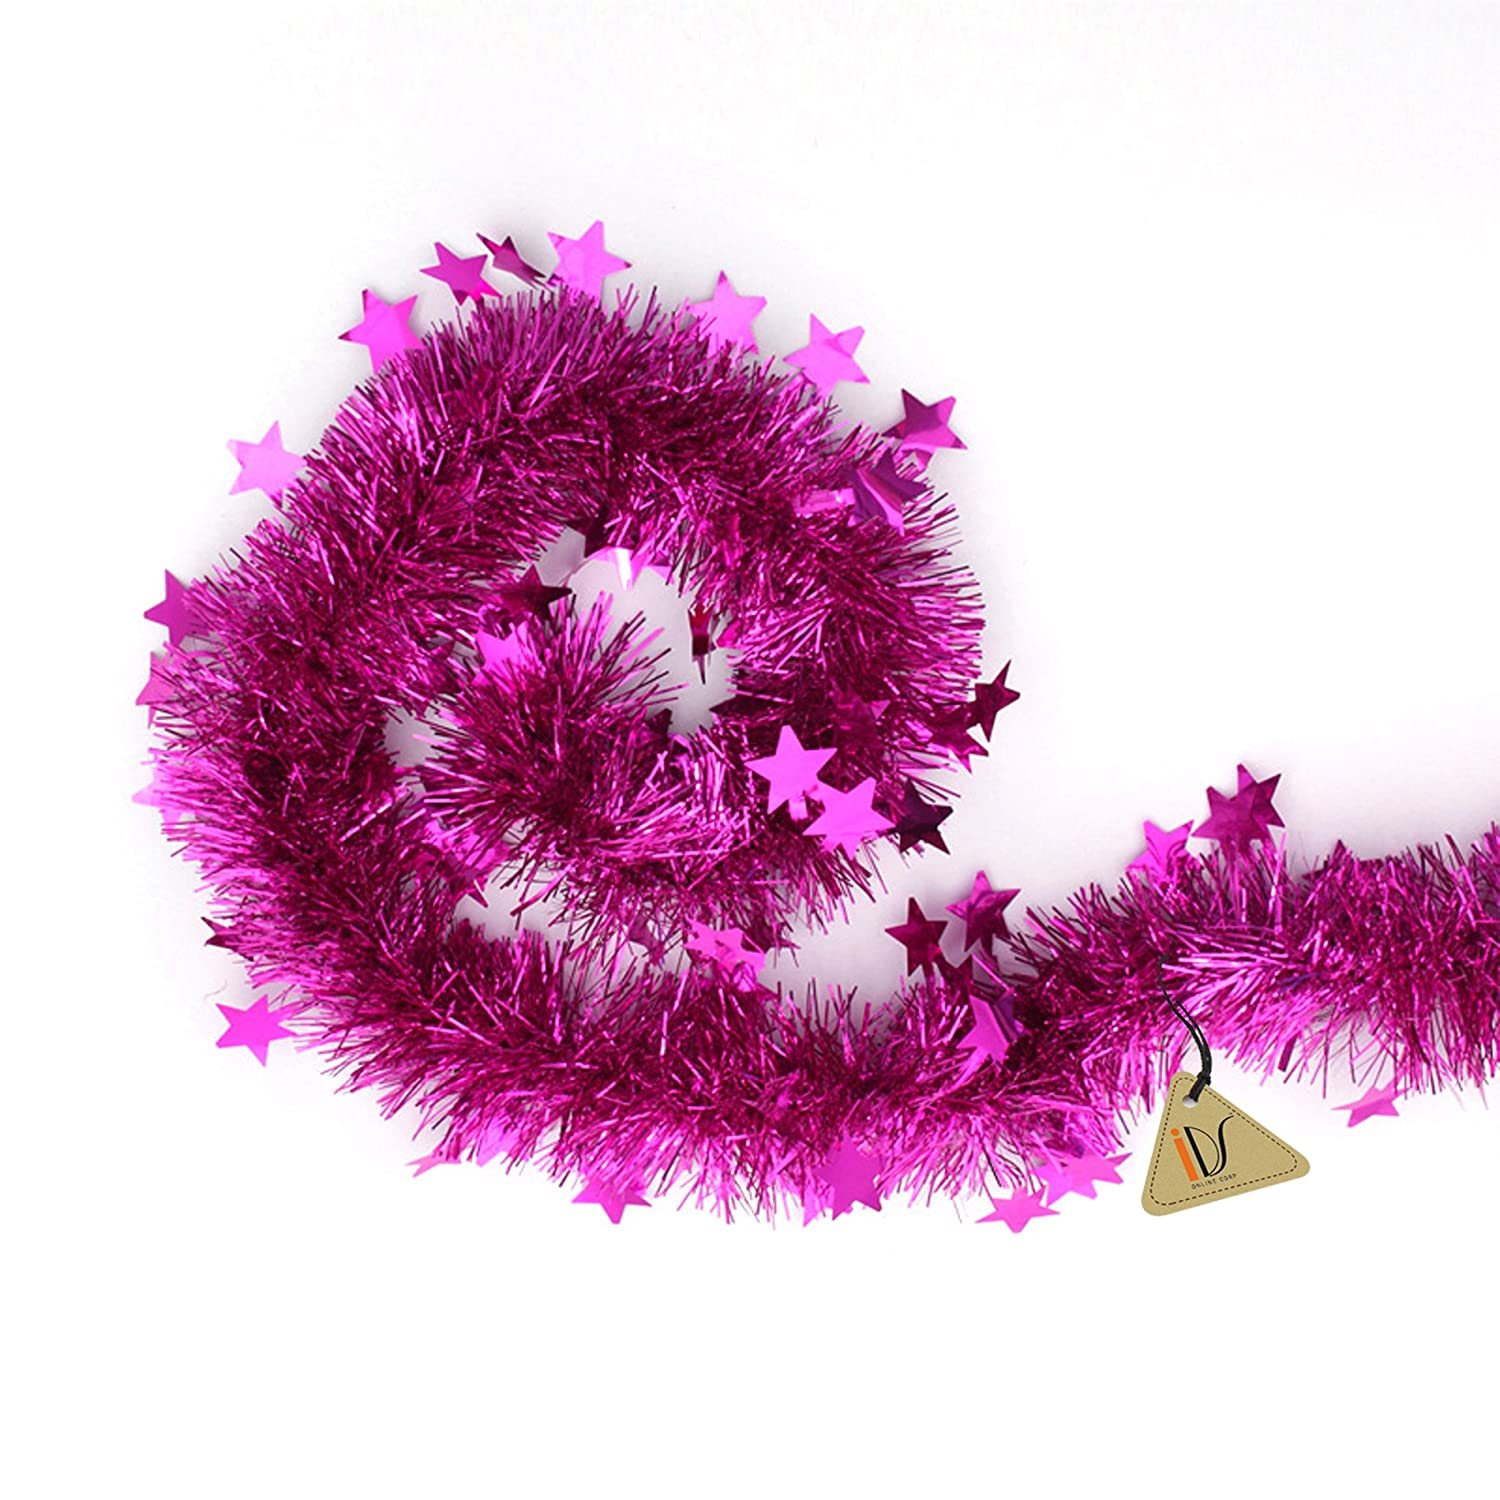 Amazon Com Pink Tinsel Garland Stars Christmas Tree Decorations  - Pink Feather Christmas Tree